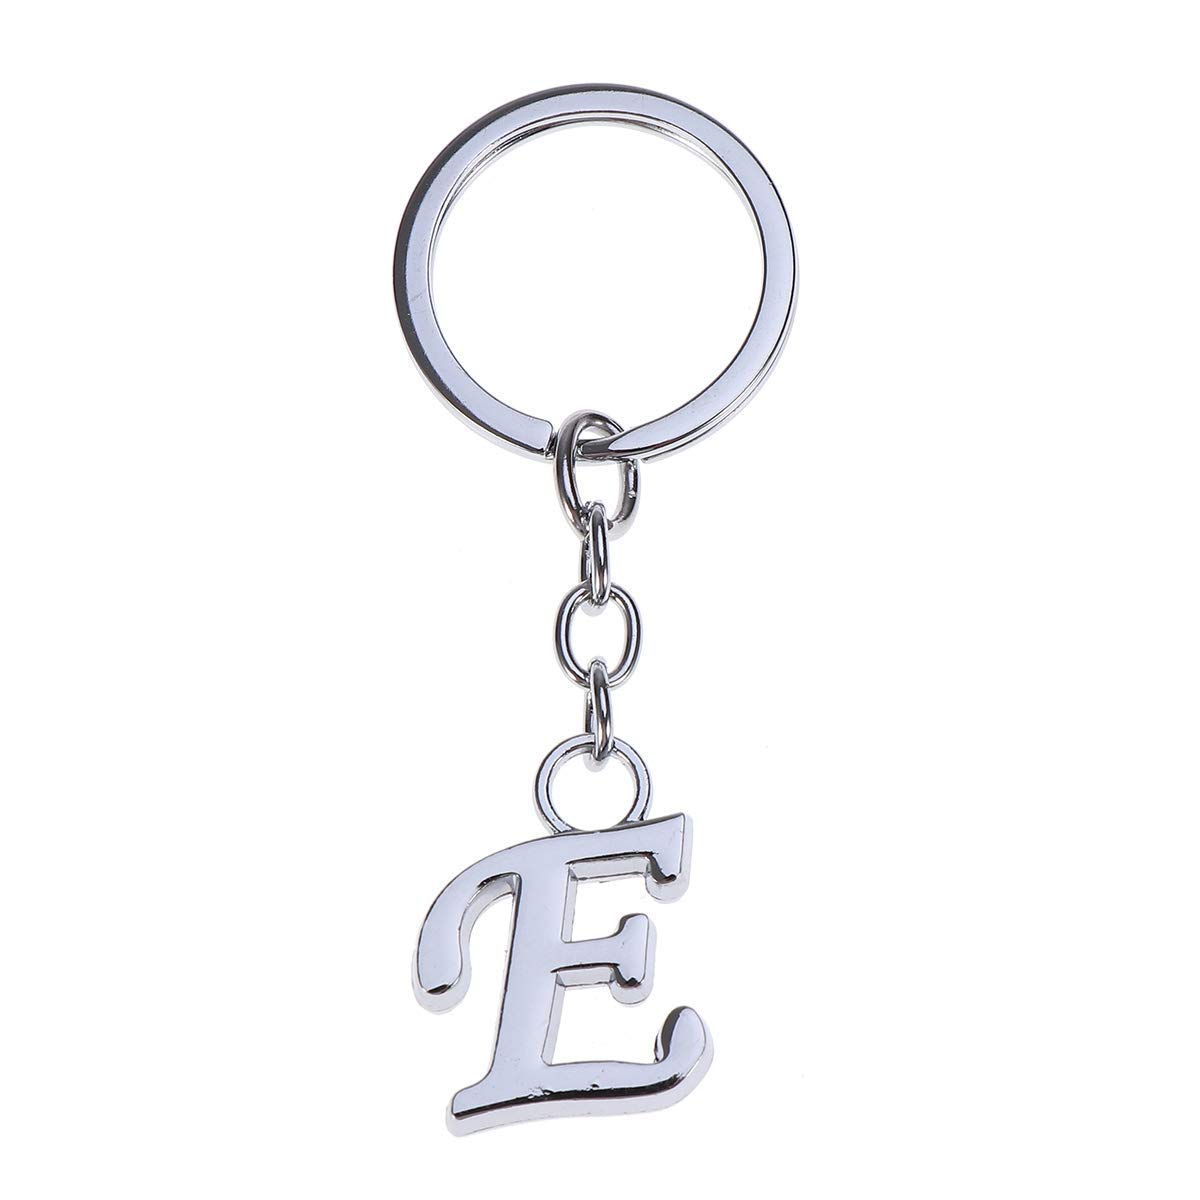 VORCOOL Simple Stylish Letter E Key Chain Metal Key Ring Alphabet Keychain Bag Pendant Charm Birthday Gift (Silver)